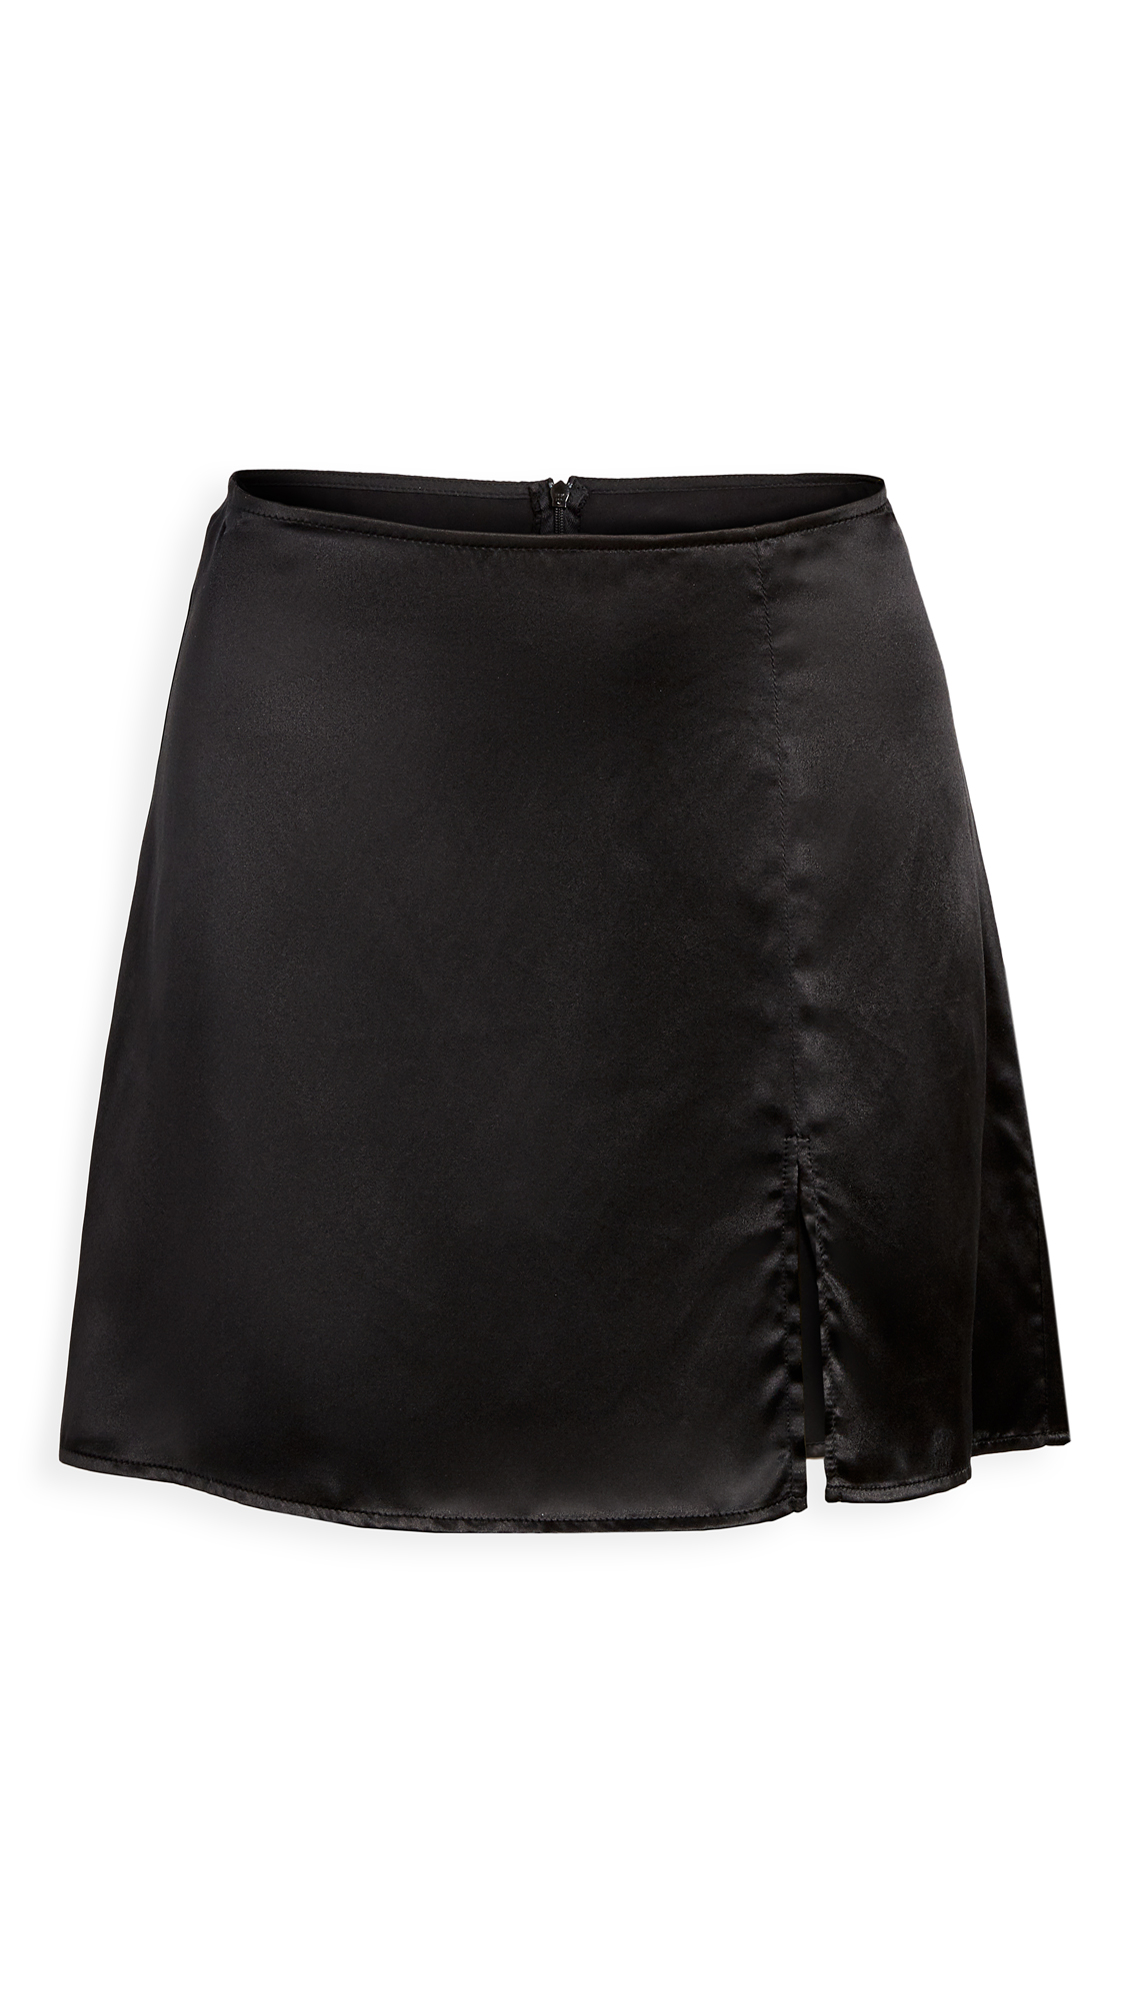 Reformation Robbie Skirt